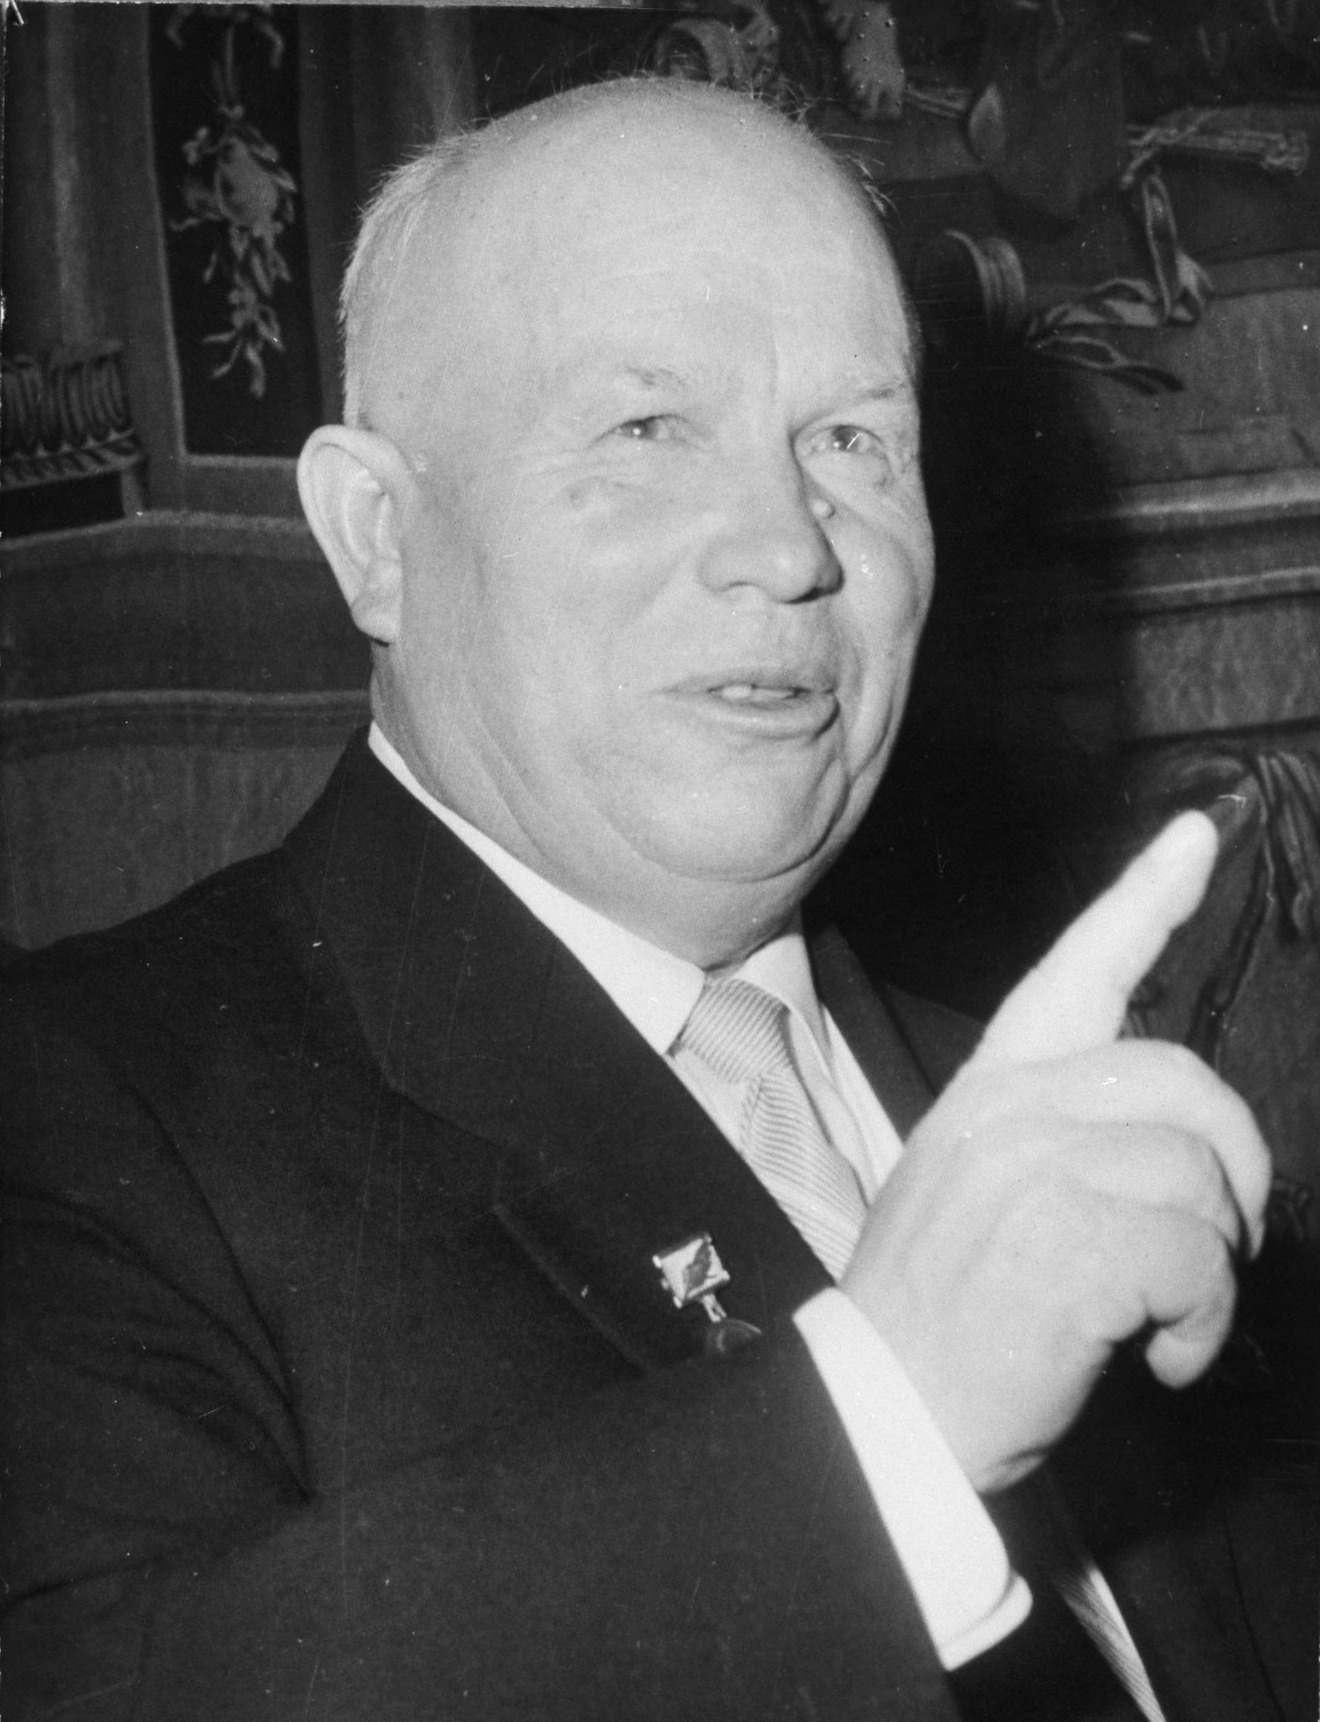 blaming khrushchev for the cuban missile Khrushchev's motives for putting missiles in cuba  ship anchored at  guantanamo, blaming it on castro and using the incident as an excuse for  invading cuba.